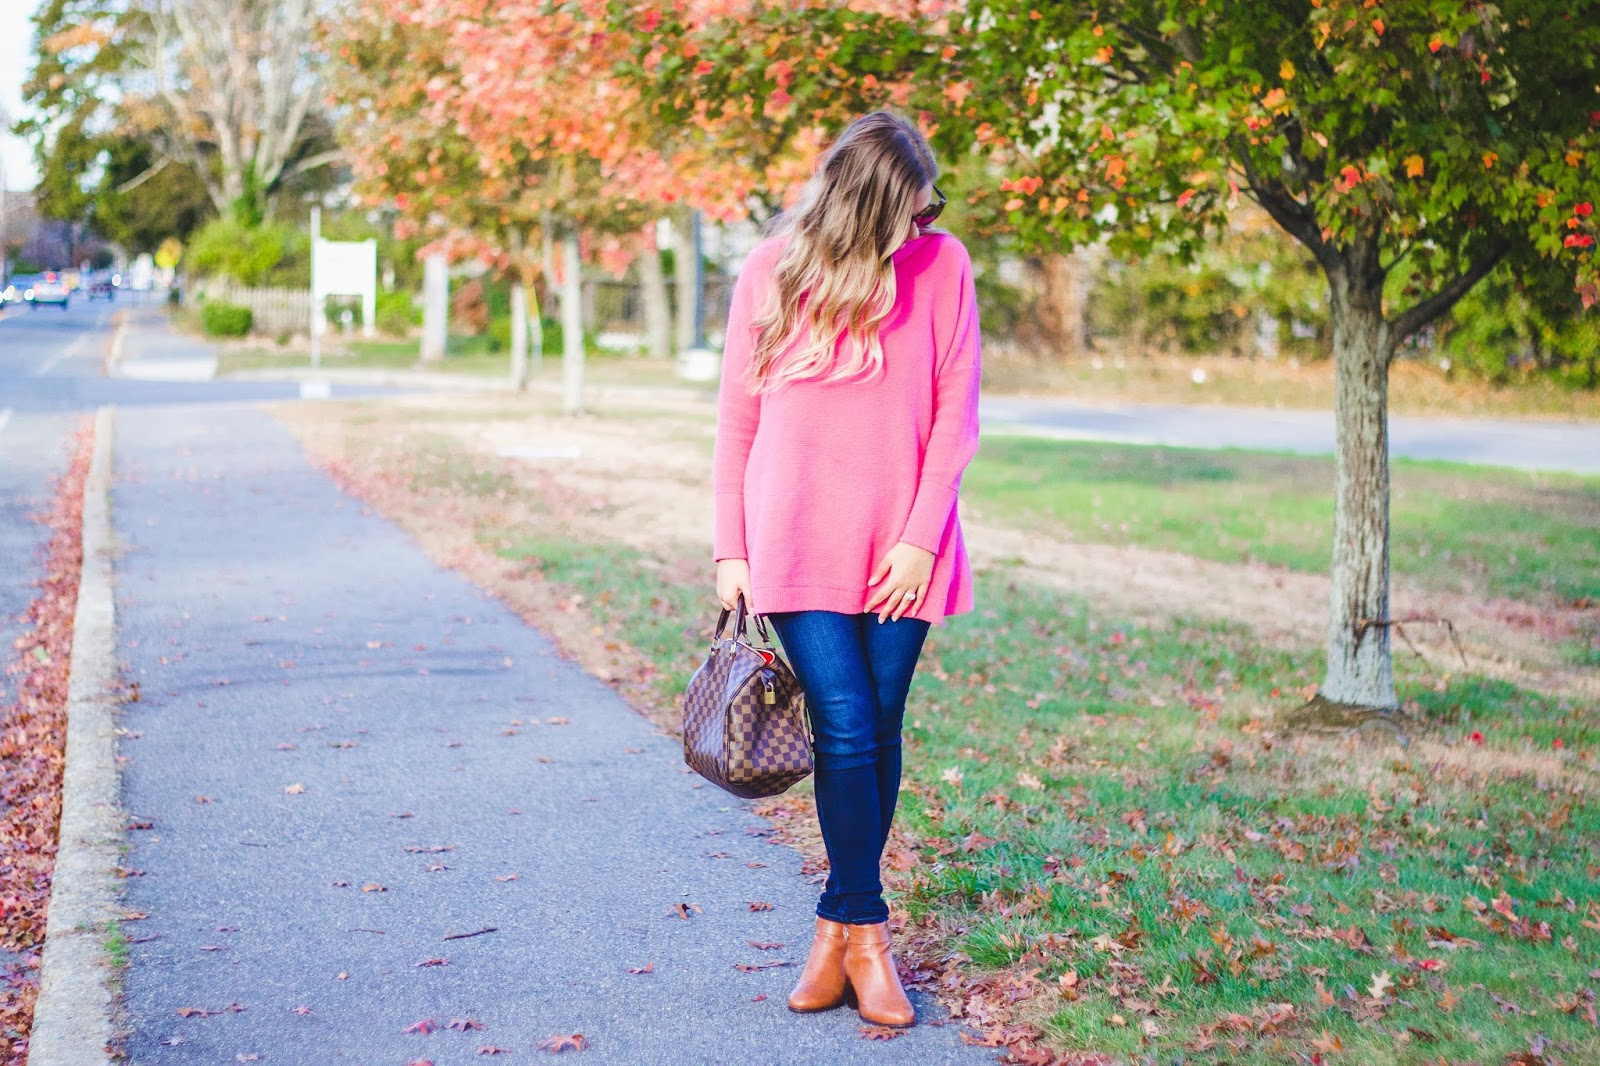 beb4c6ab59 Style Cubby - Fashion and Lifestyle Blog Based in New England: Hot Pink  Sweater